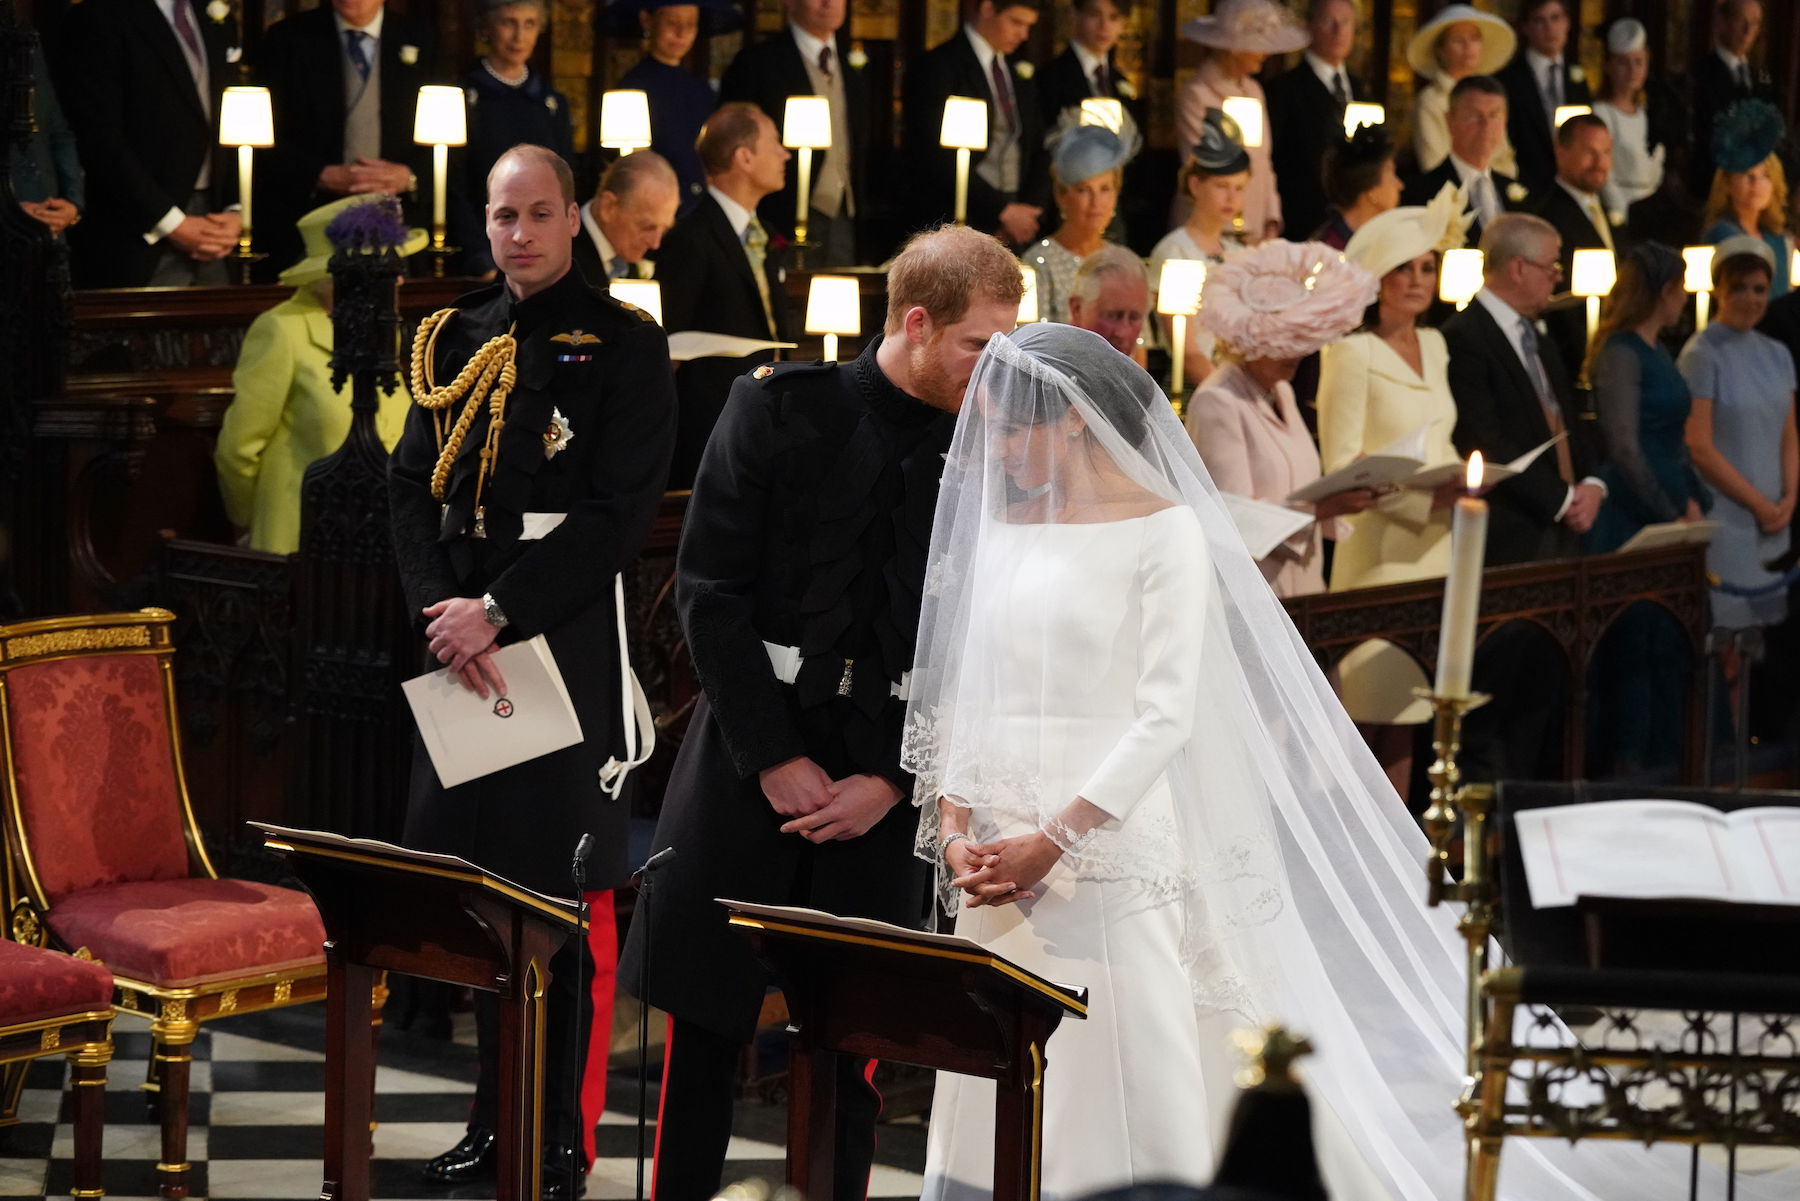 <div class='meta'><div class='origin-logo' data-origin='Creative Content'></div><span class='caption-text' data-credit='Jonathan BradyAFP/Getty Images'>Britain's Prince Harry and Meghan Markle arrive at the High Altar for their wedding ceremony in St George's Chapel, Windsor Castle.</span></div>